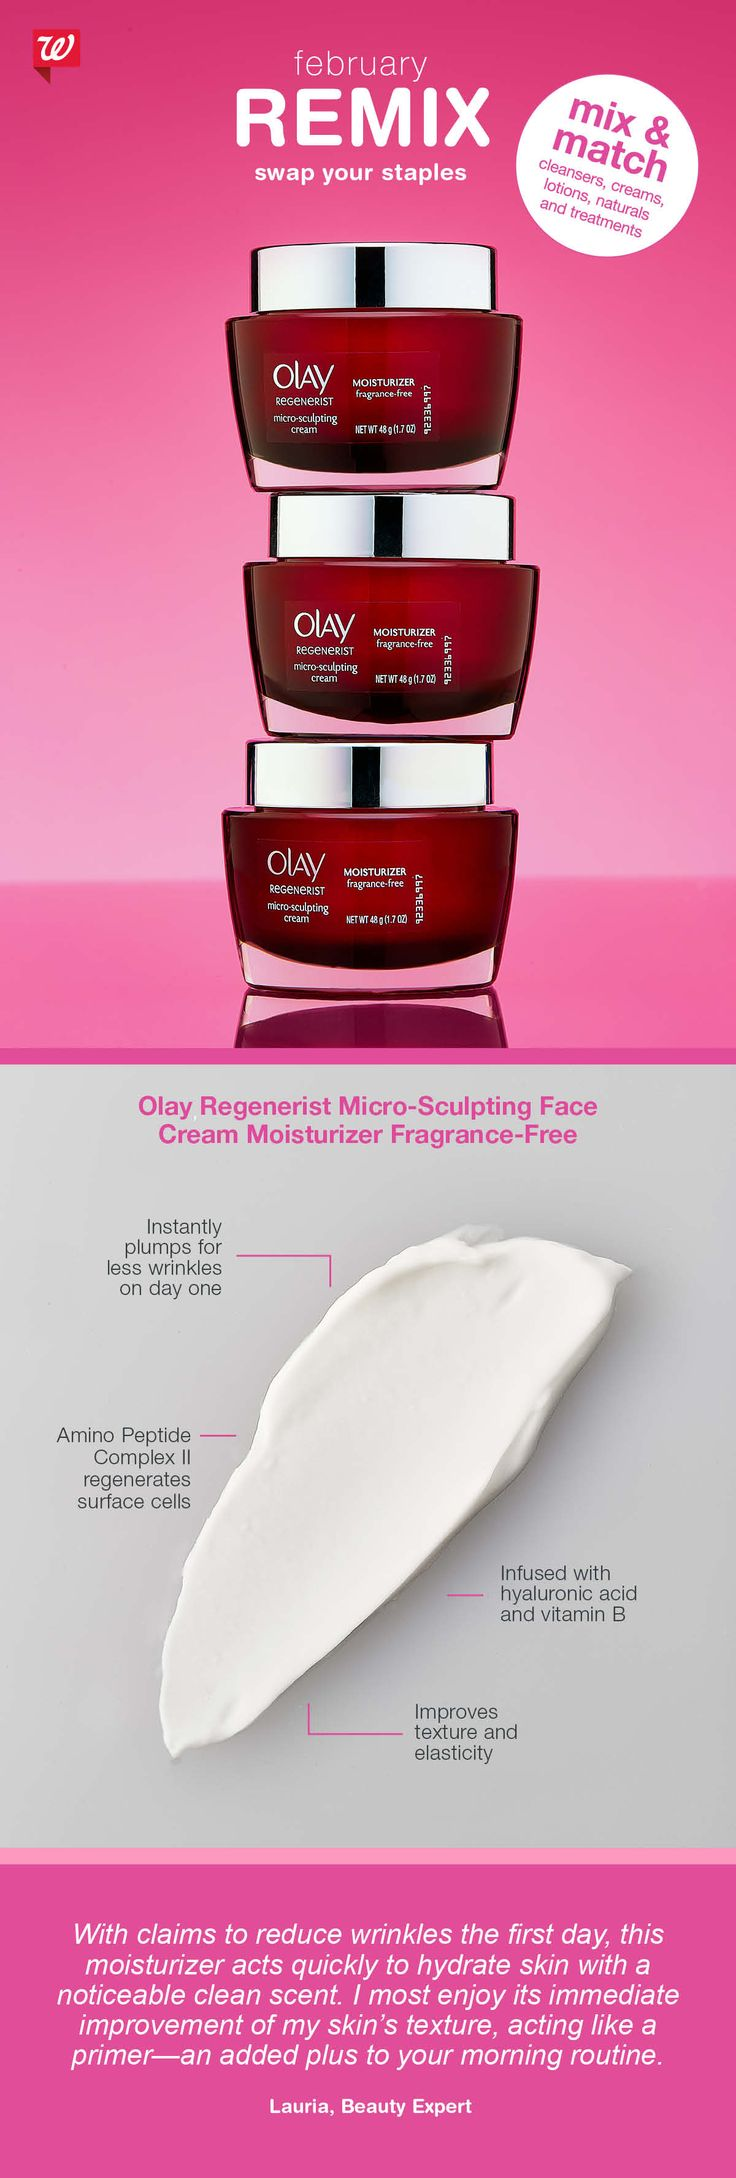 Did you know? Hyaluronic acid, a main ingredient in Olay Regenerist Micro-Sculpting Face Cream Moisturizer, enhances skin's ability to hold moisture for a younger-looking complexion.